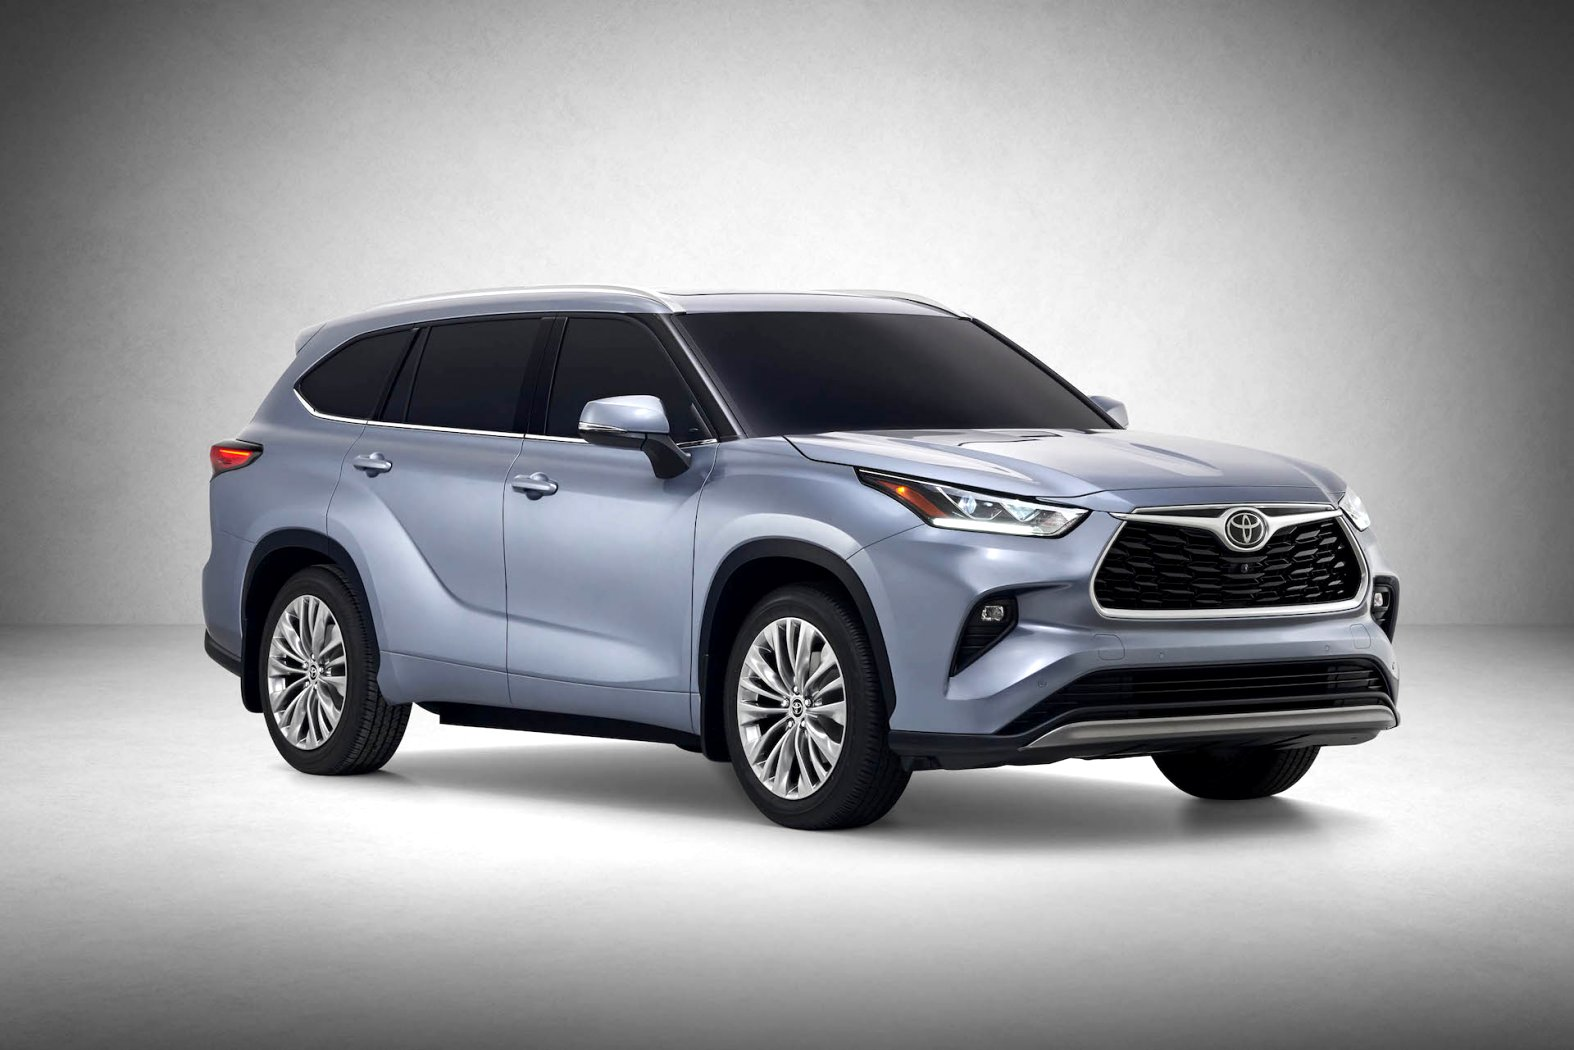 toyota highlander 2020 review Configurations